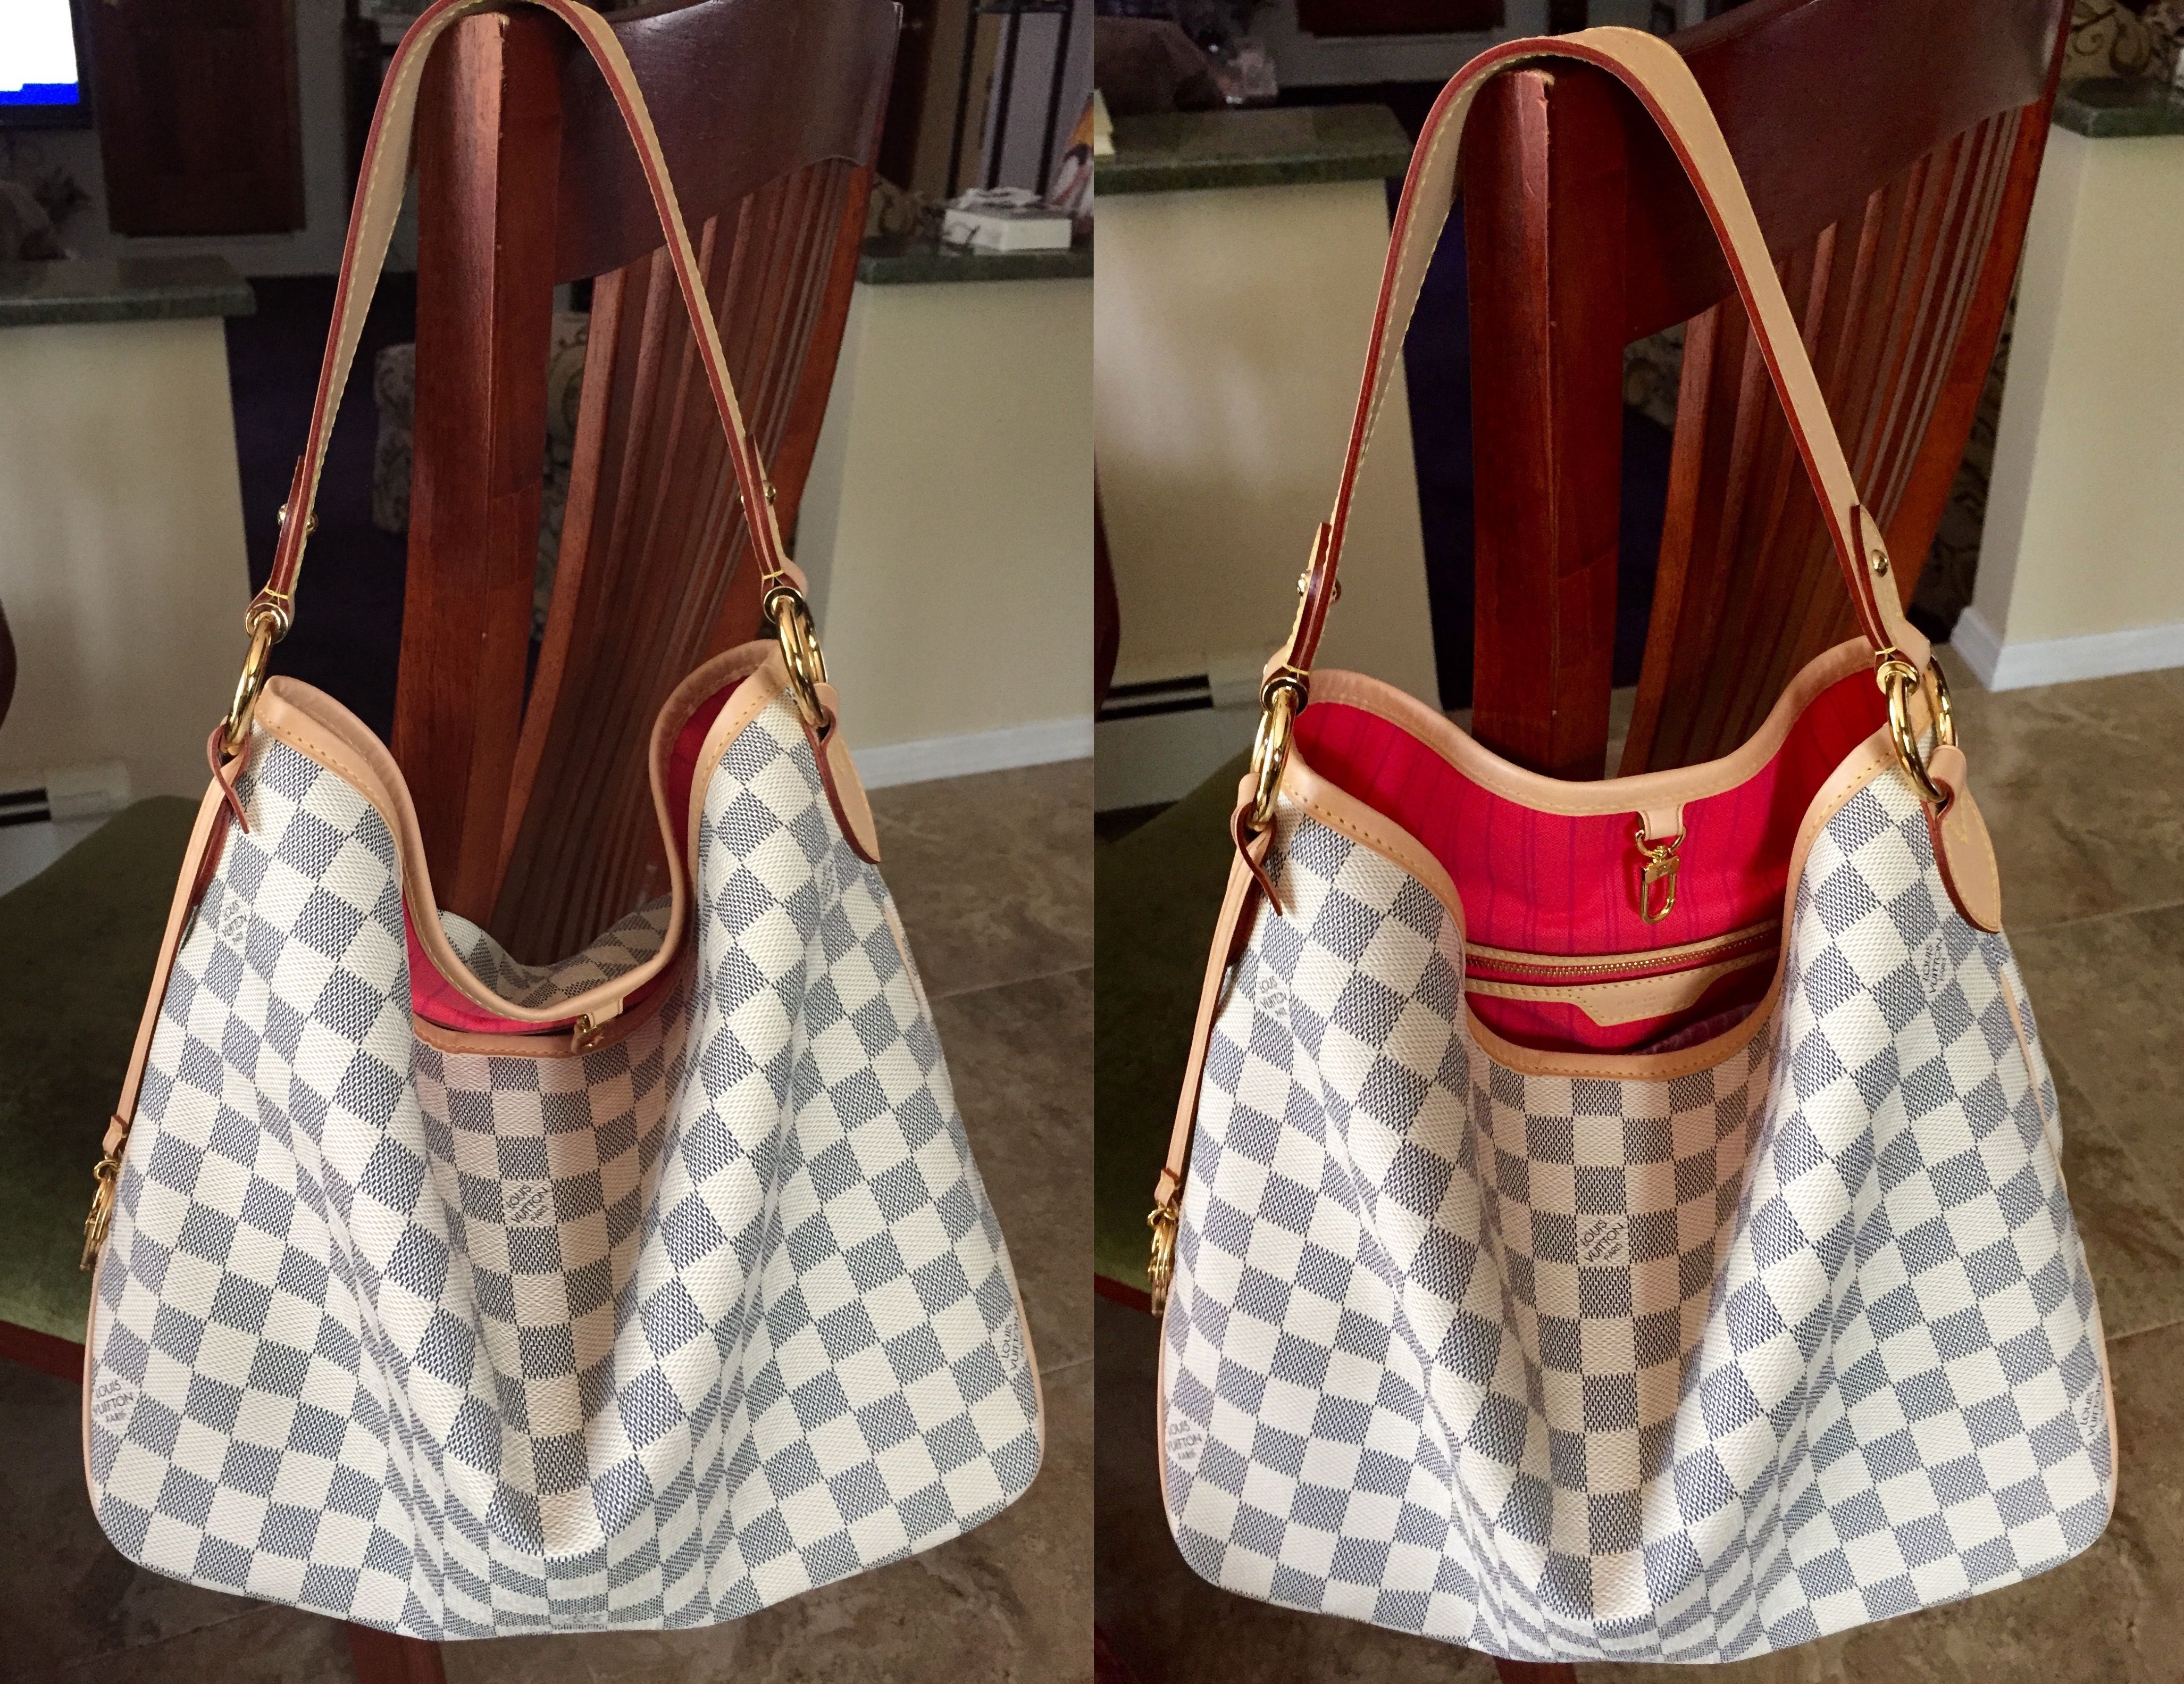 08146b0f5c86 Louis Vuitton Delightful PM in Damier Azur. Love the pink lining that just  pops! Fun